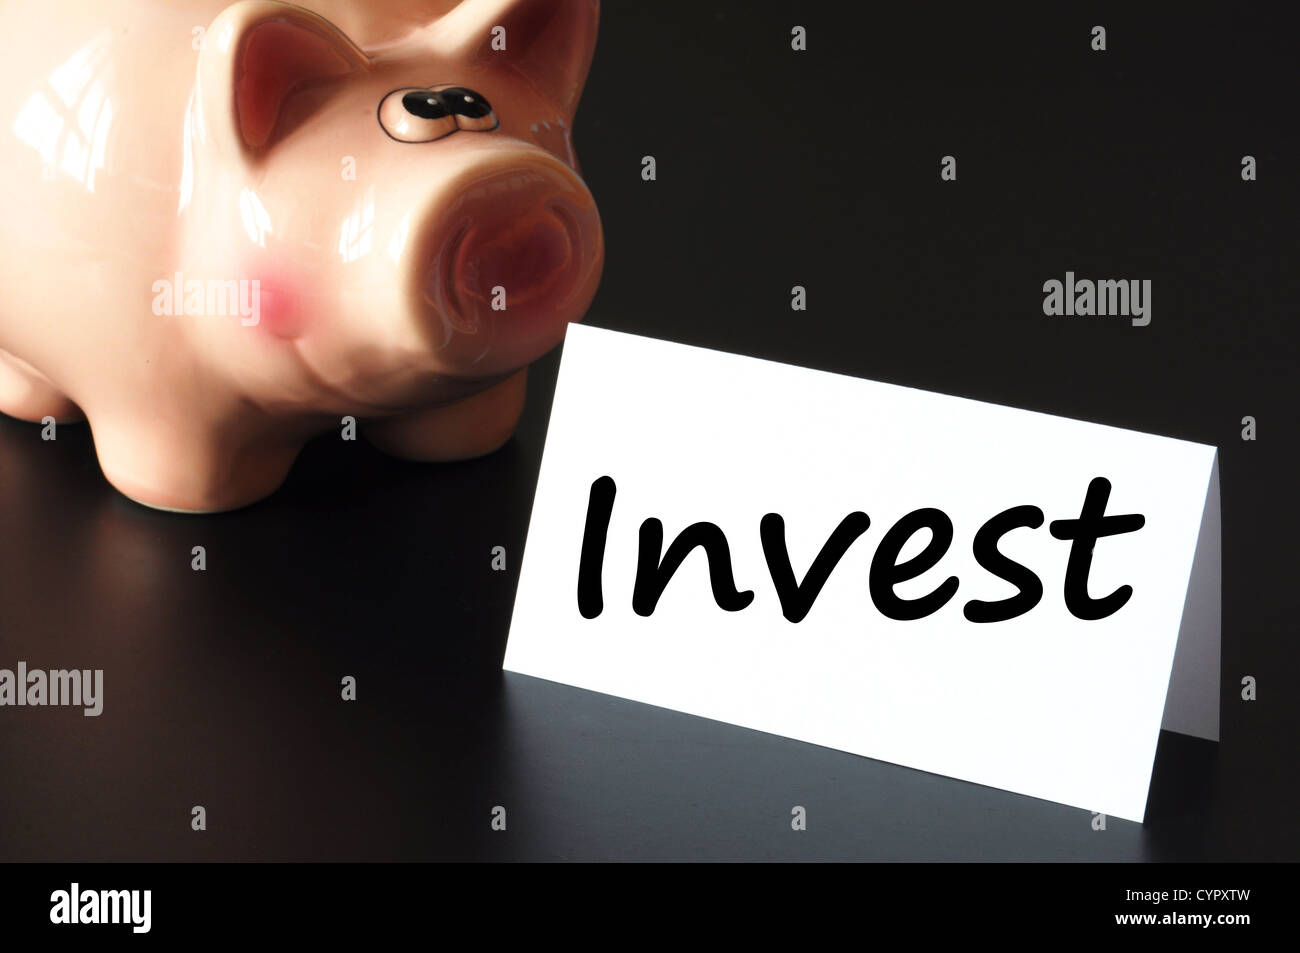 invest money or savings in your business future - Stock Image